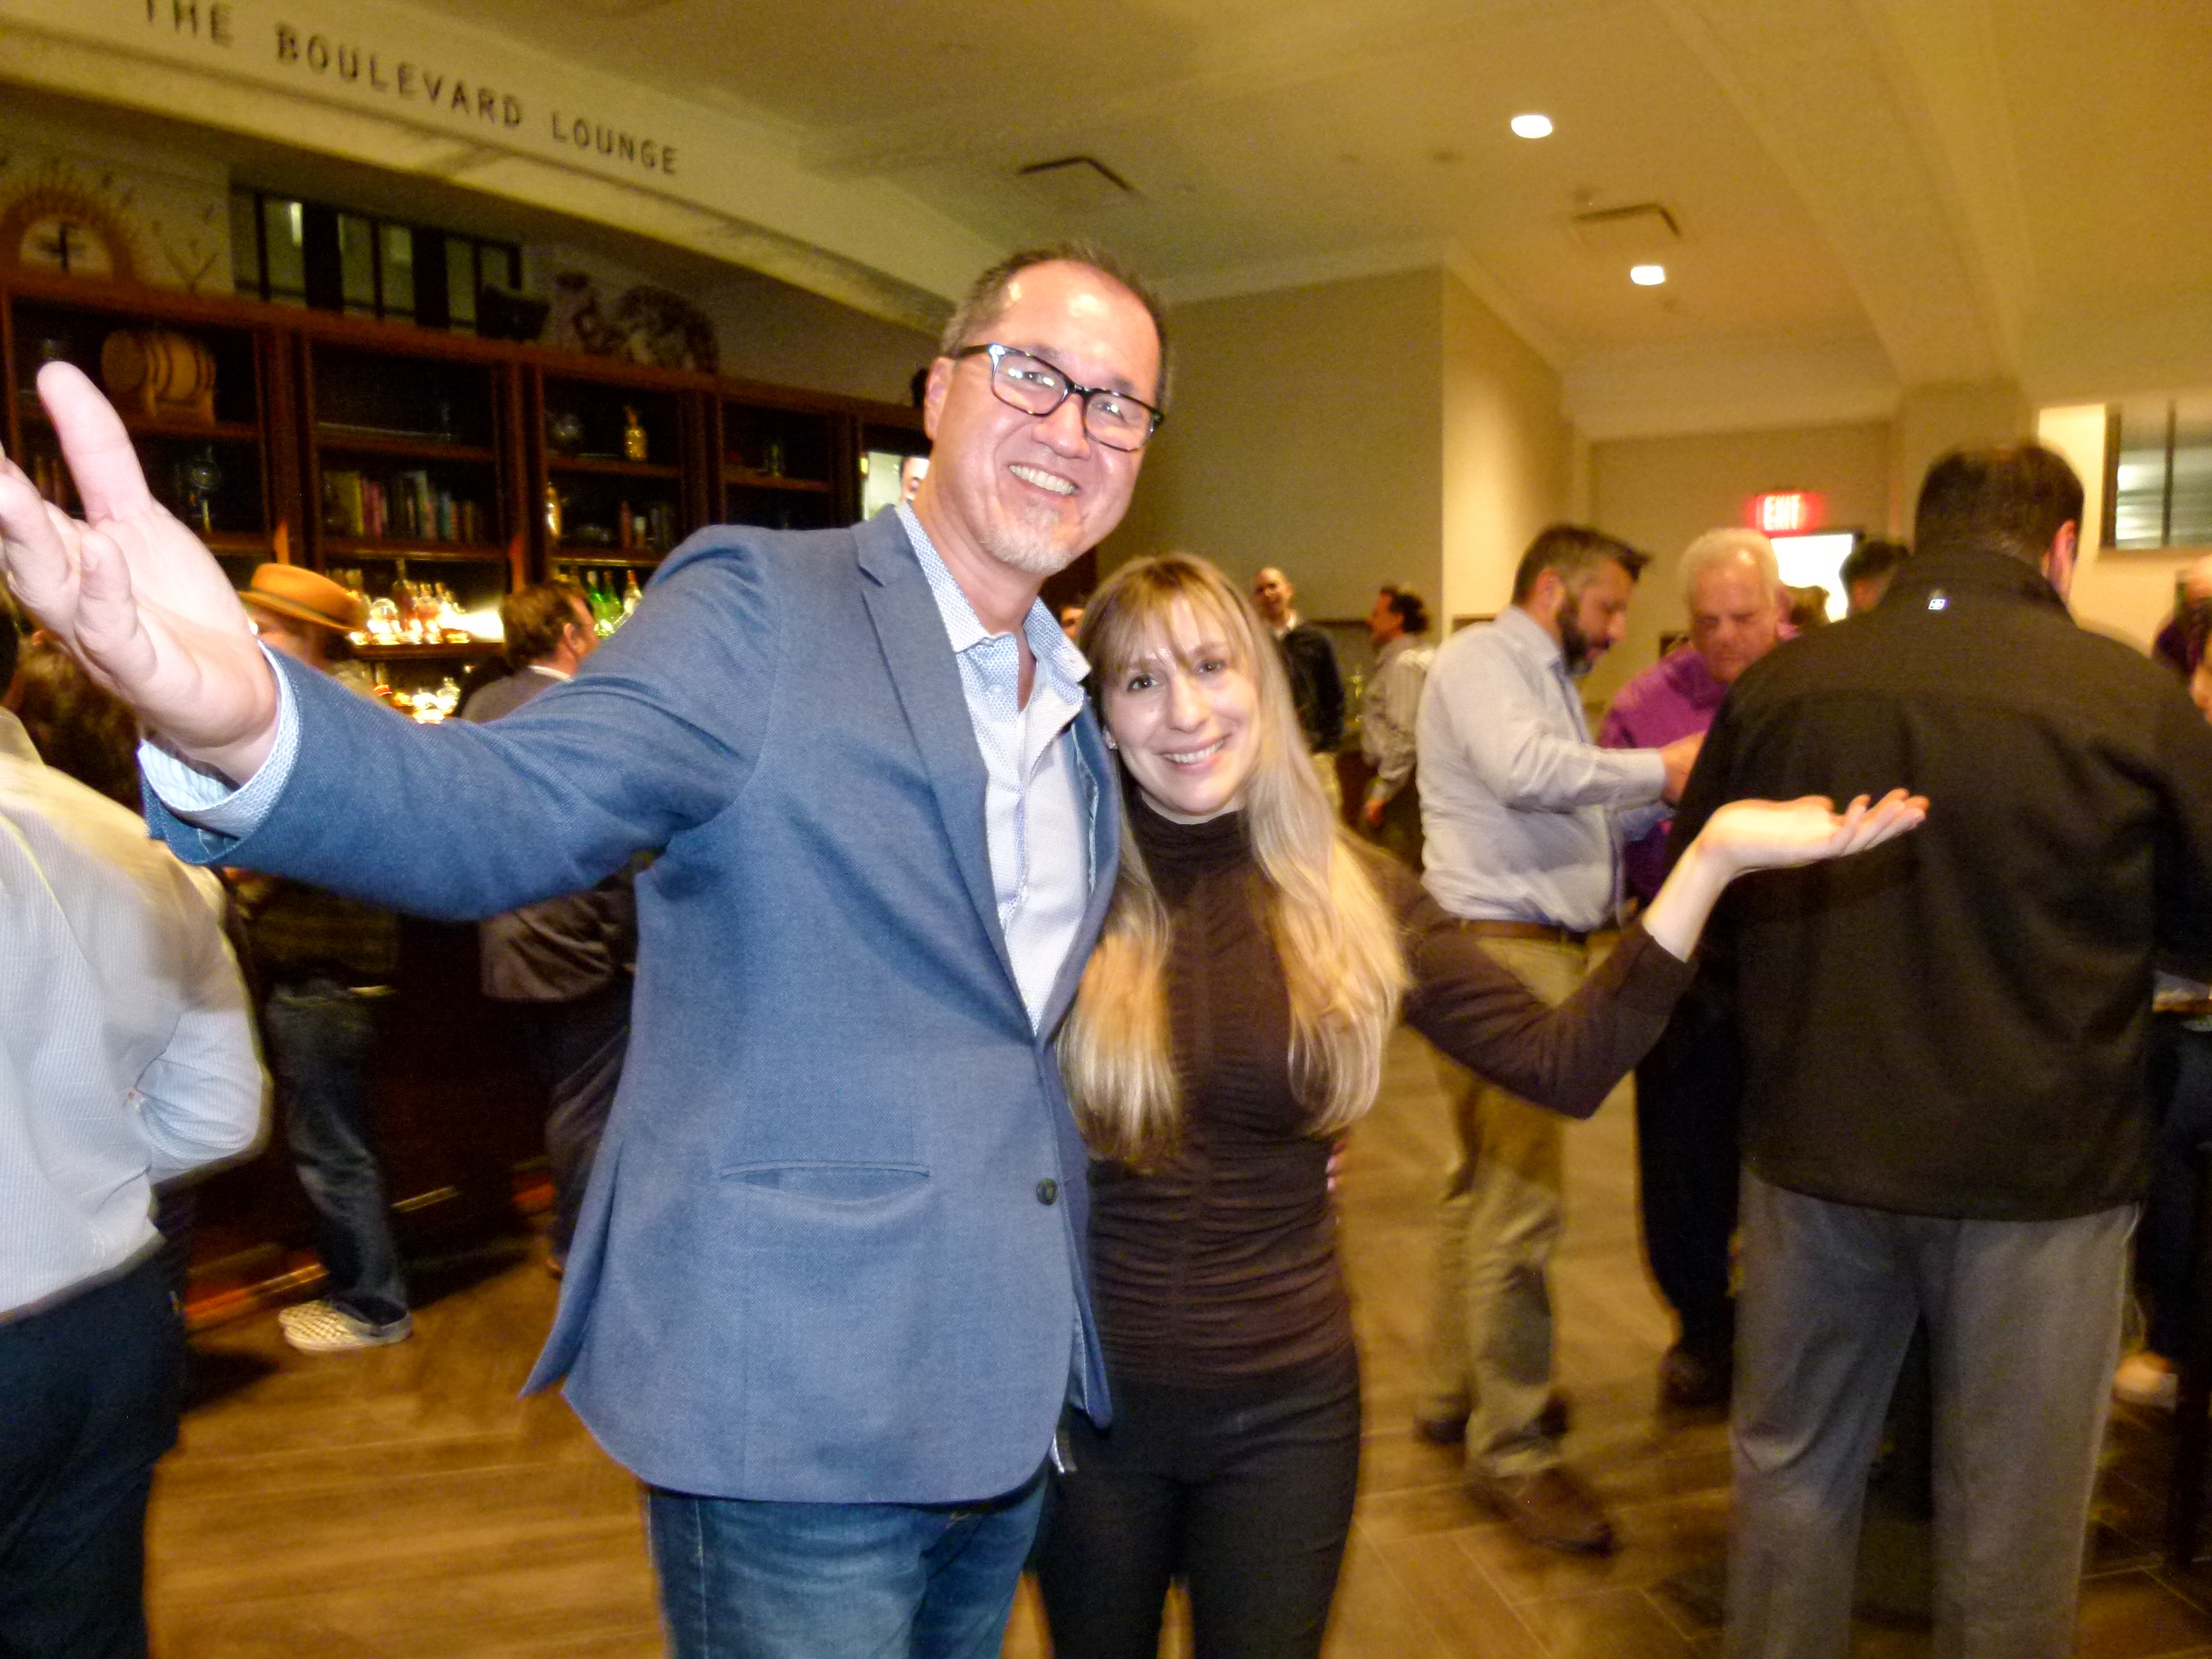 Bill Shannon (GM of or, The Whale and Boulevard Lounge) and Rachel Borovik (Events Coordinator) welcome guests with open arms.